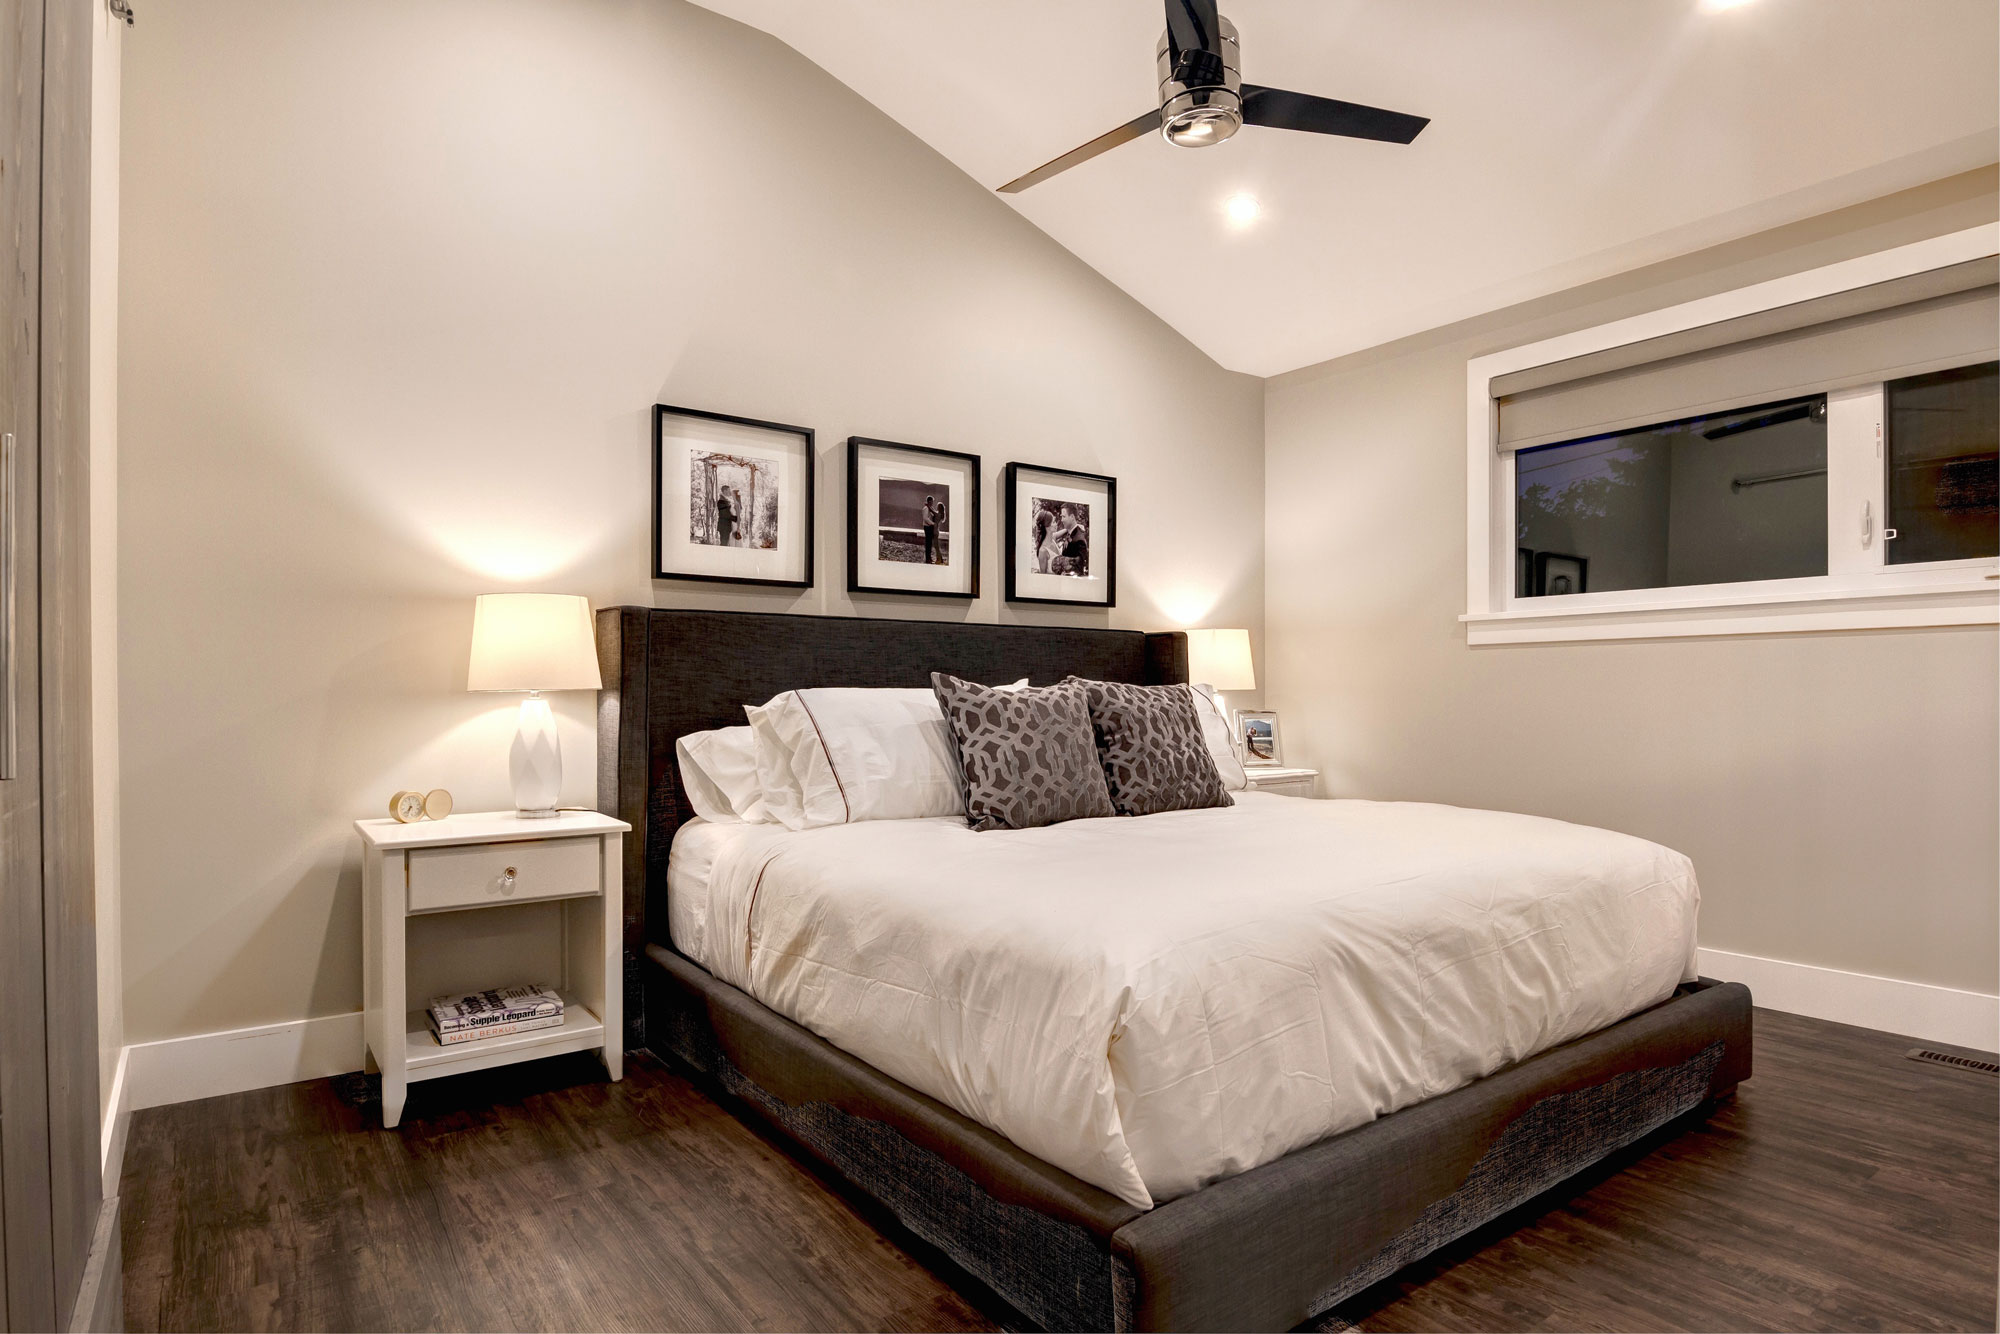 Bedroom Remodel with Hardwood floors by Style Developments